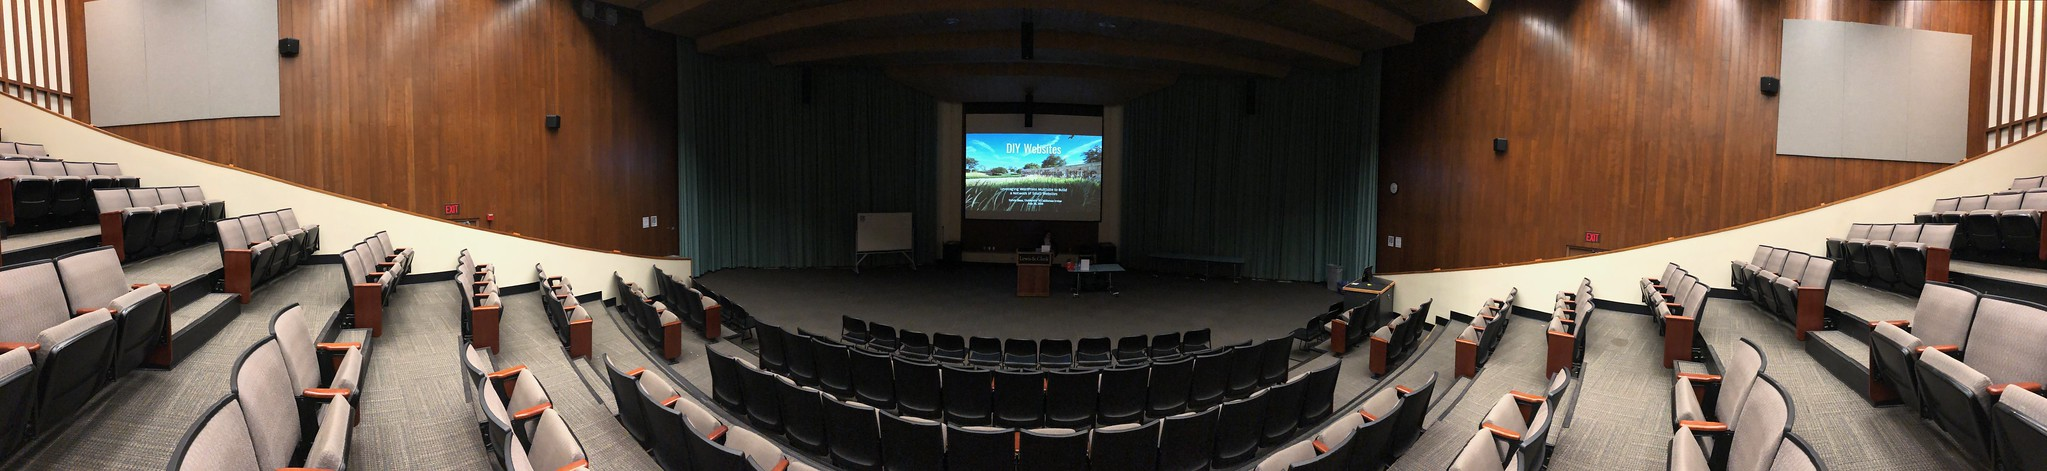 view from the back of the auditorium